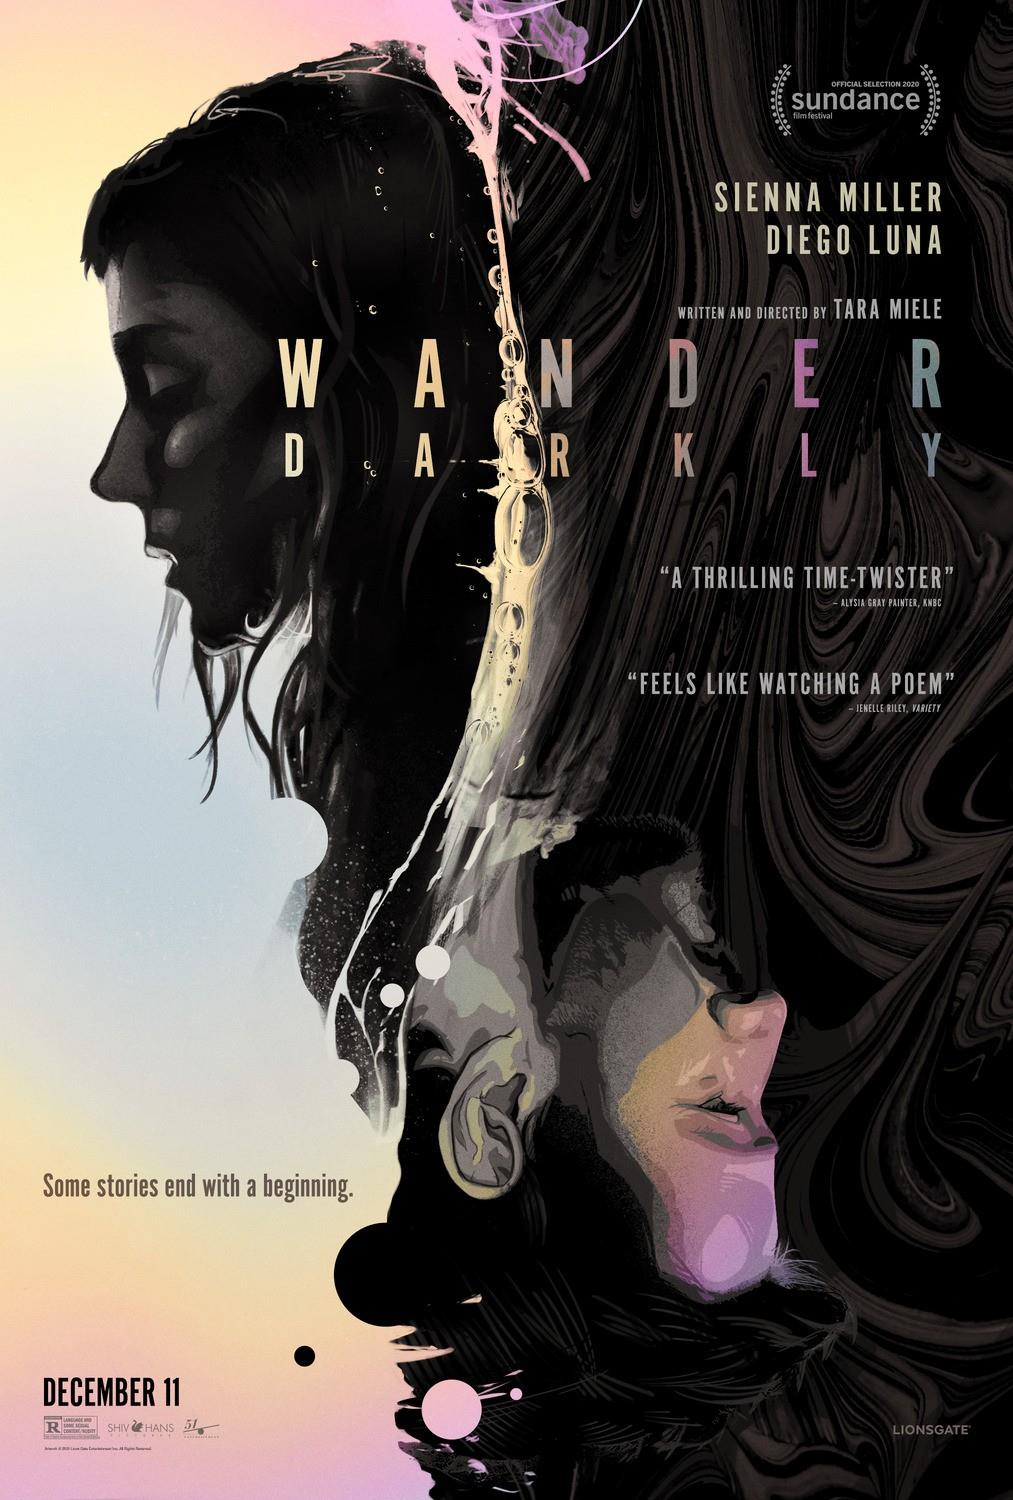 telecharger Wander Darkly 2020 FRENCH WEBRiP LD XViD-CZ530 torrent9